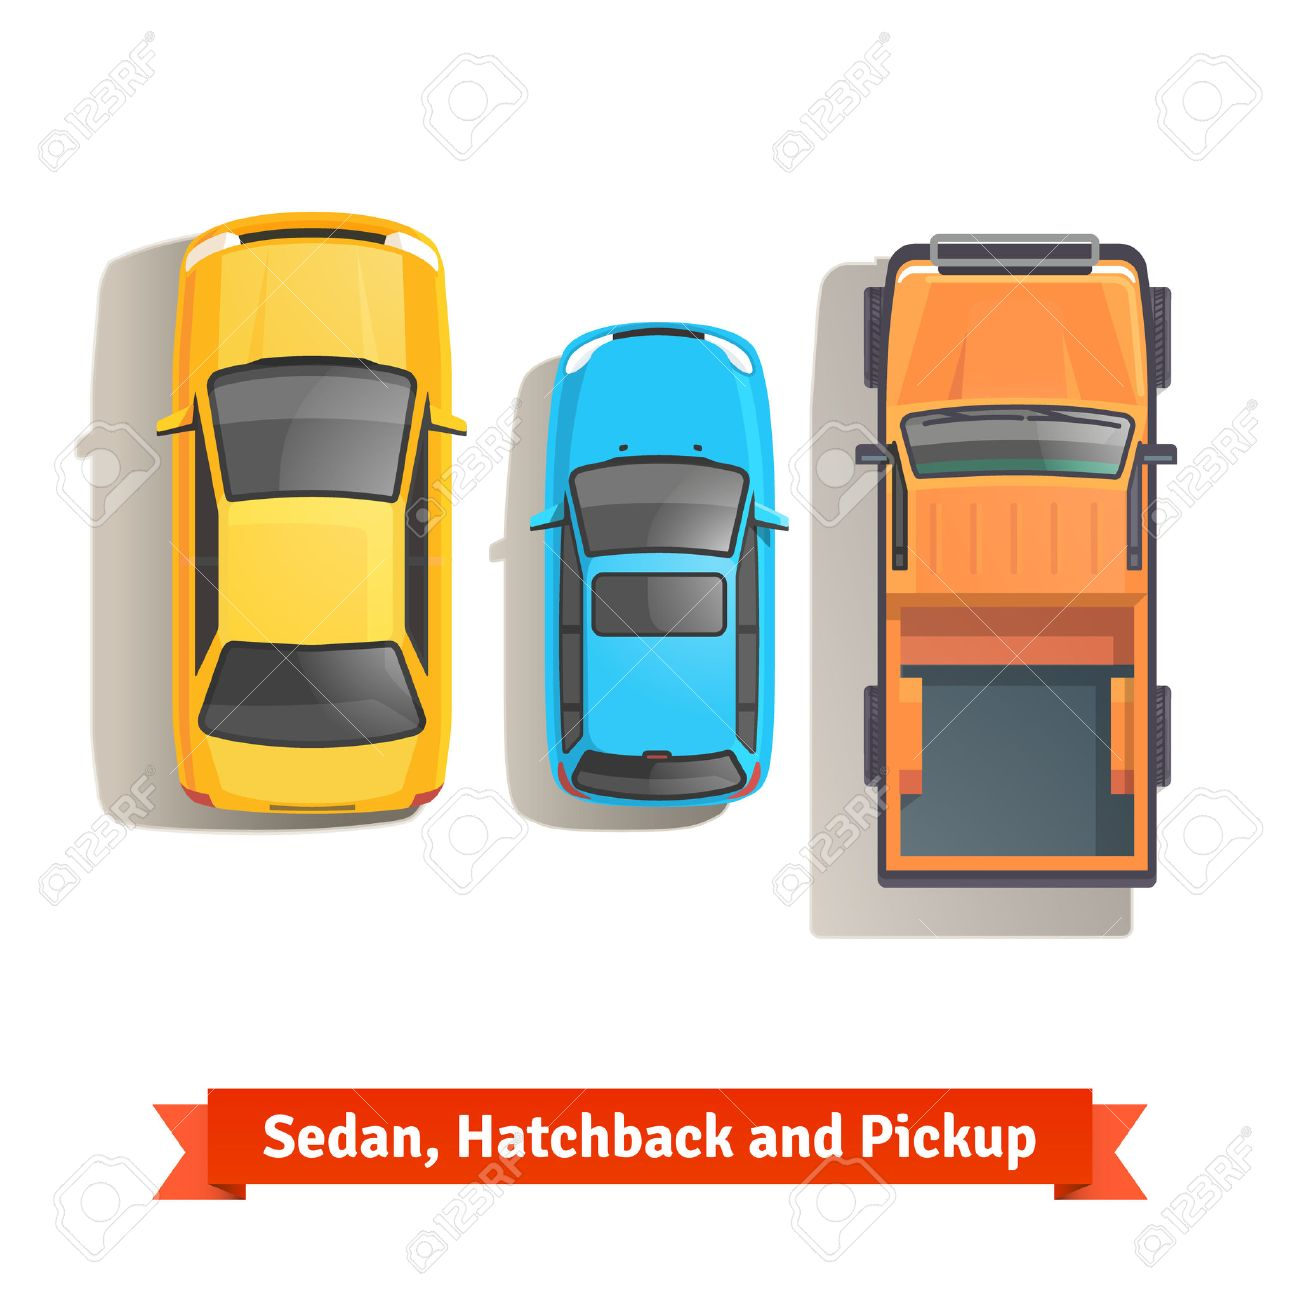 1300x1300 Sedan, Hatchback Cars And Pickup Truck Top View. Flat Style Vector